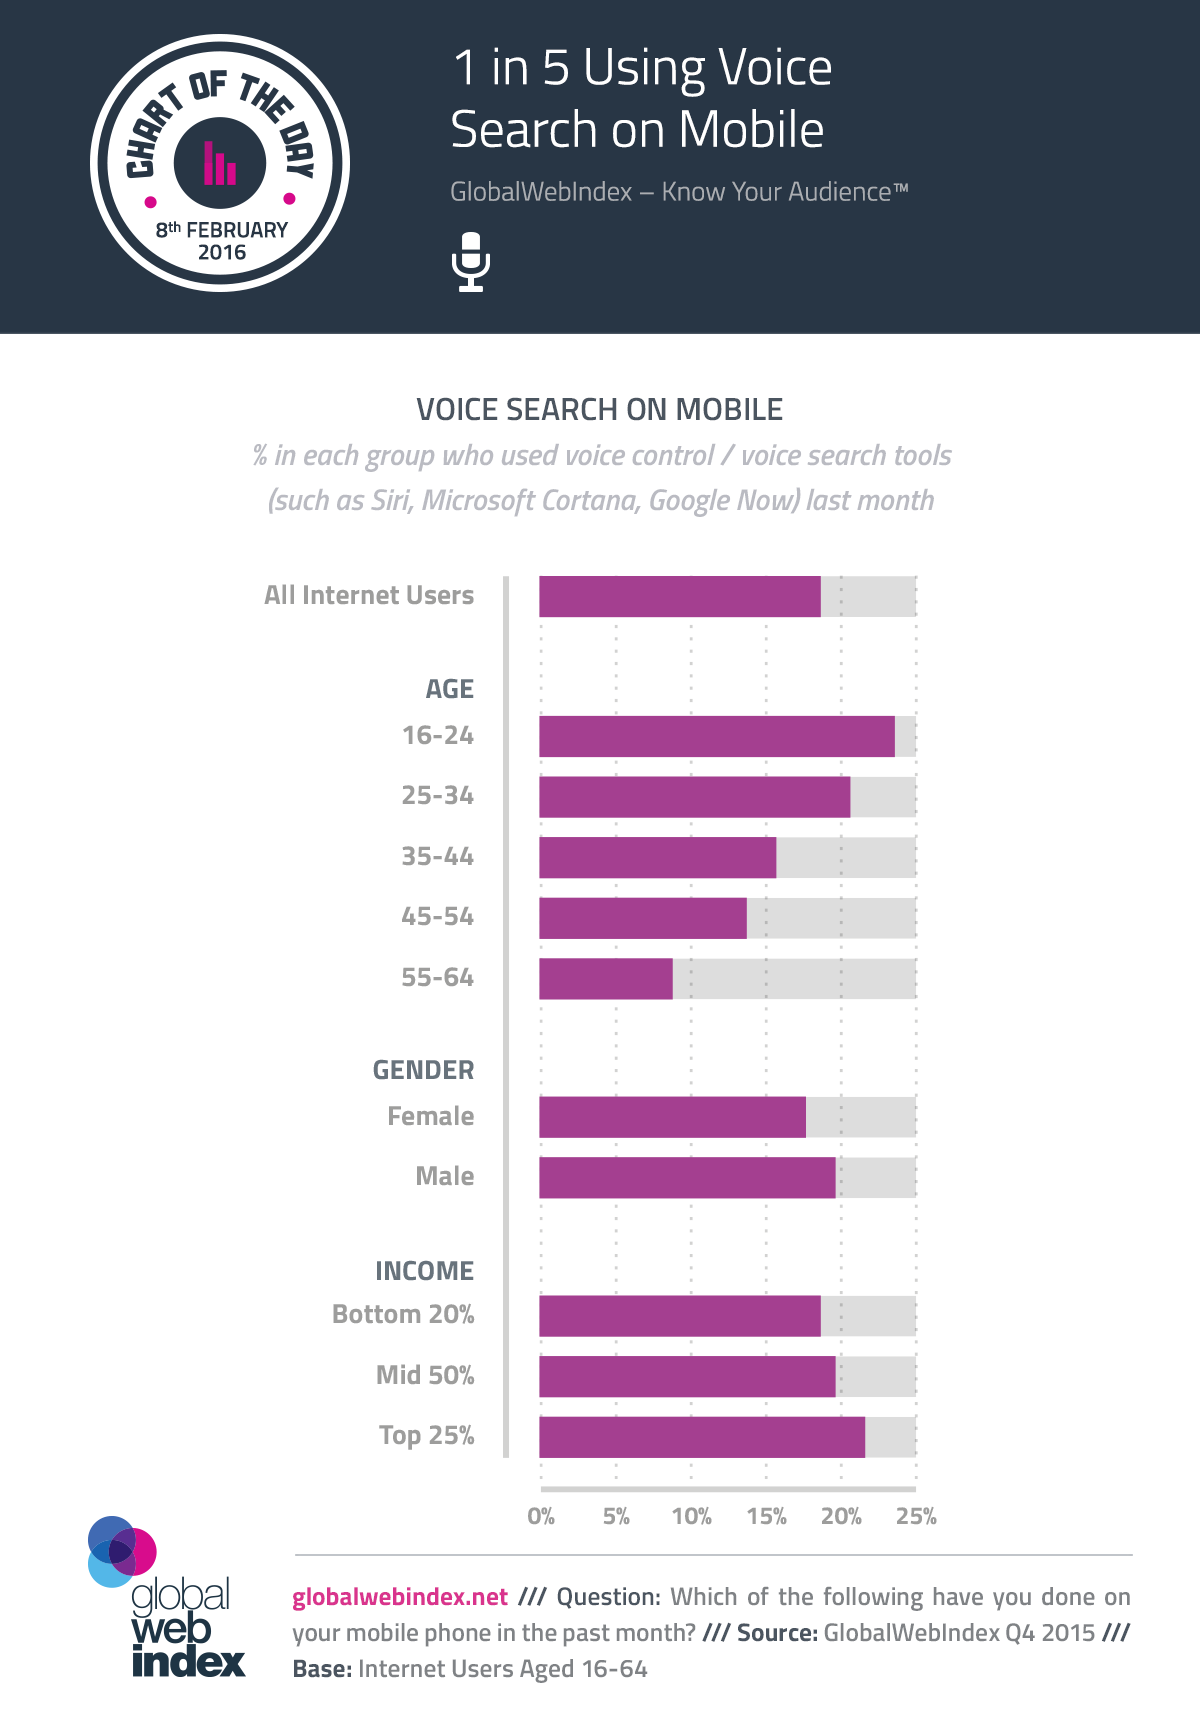 1 in 5 Using Voice Search on Mobile